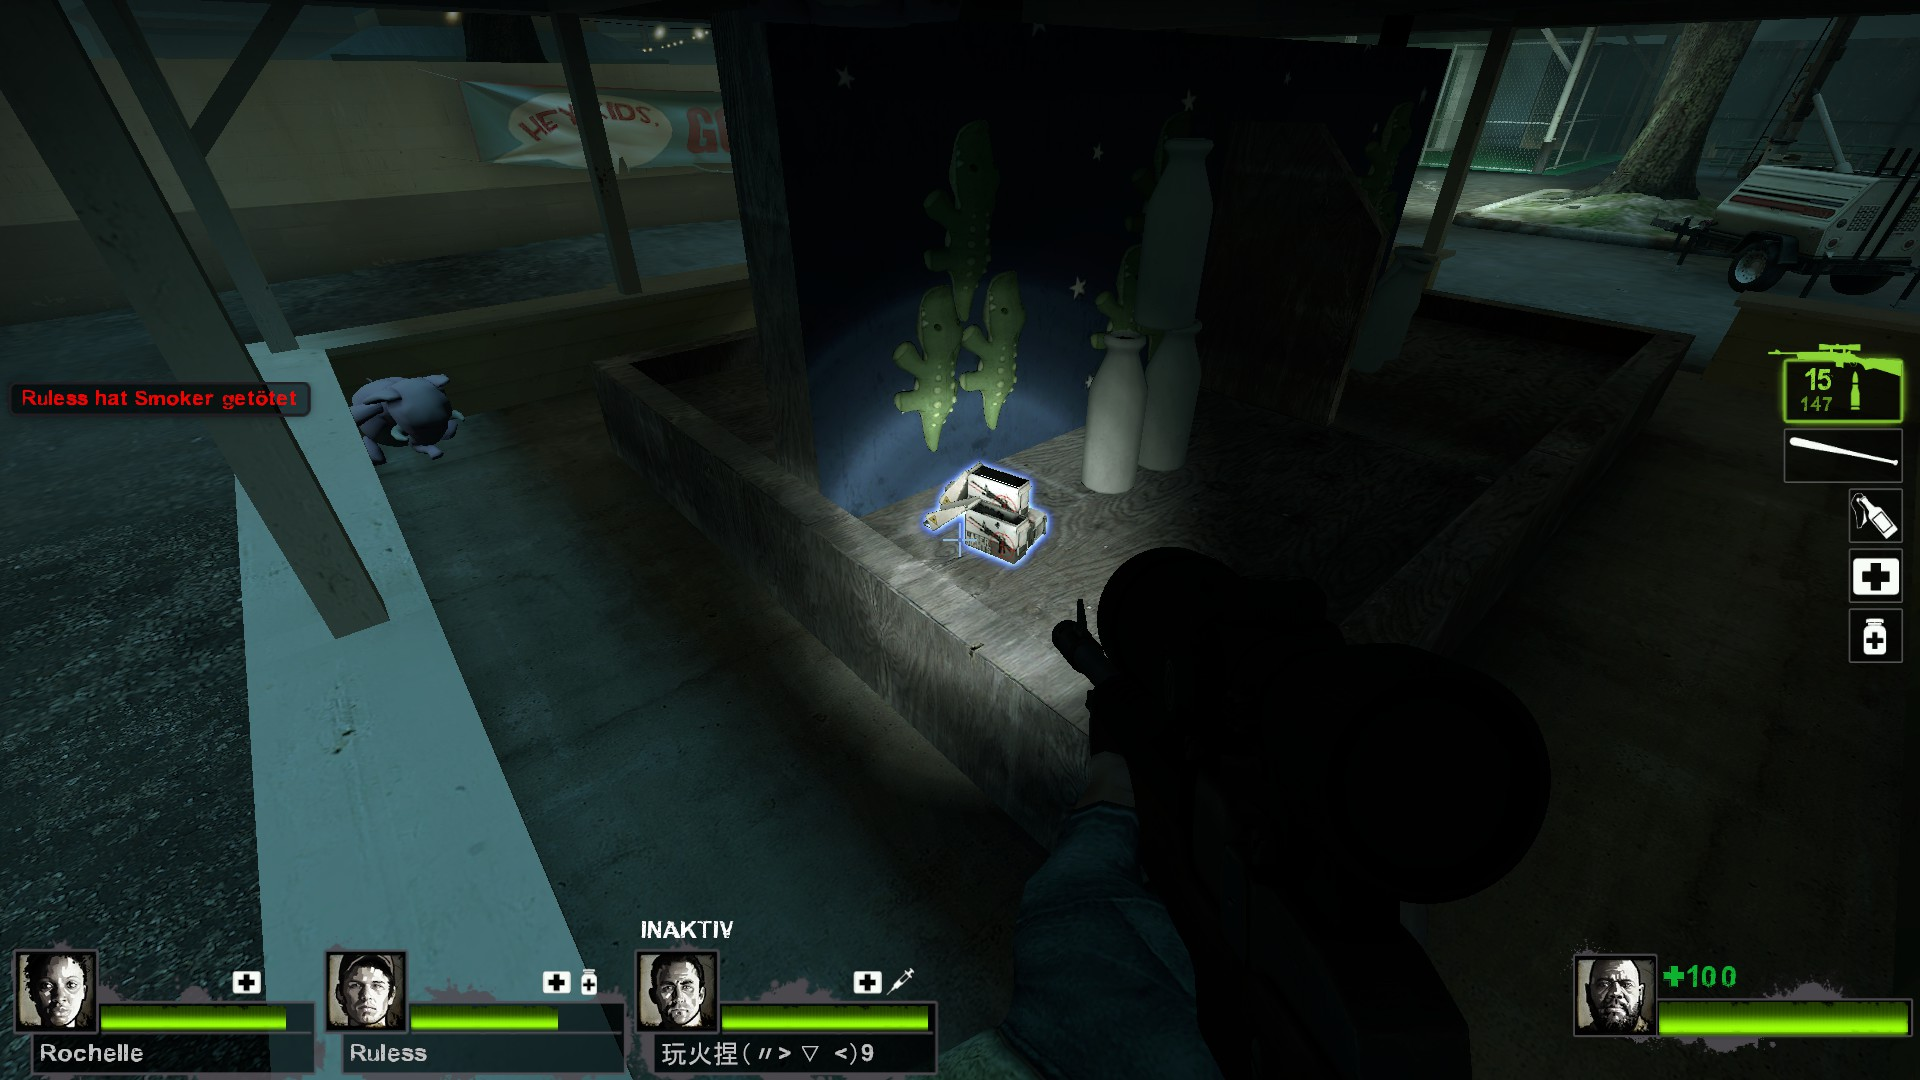 Left 4 Dead 2 - Detailed Guide for All Laser Sight Locations in Game - Map Guide - Potential spots, L4D2 maps - 972B473